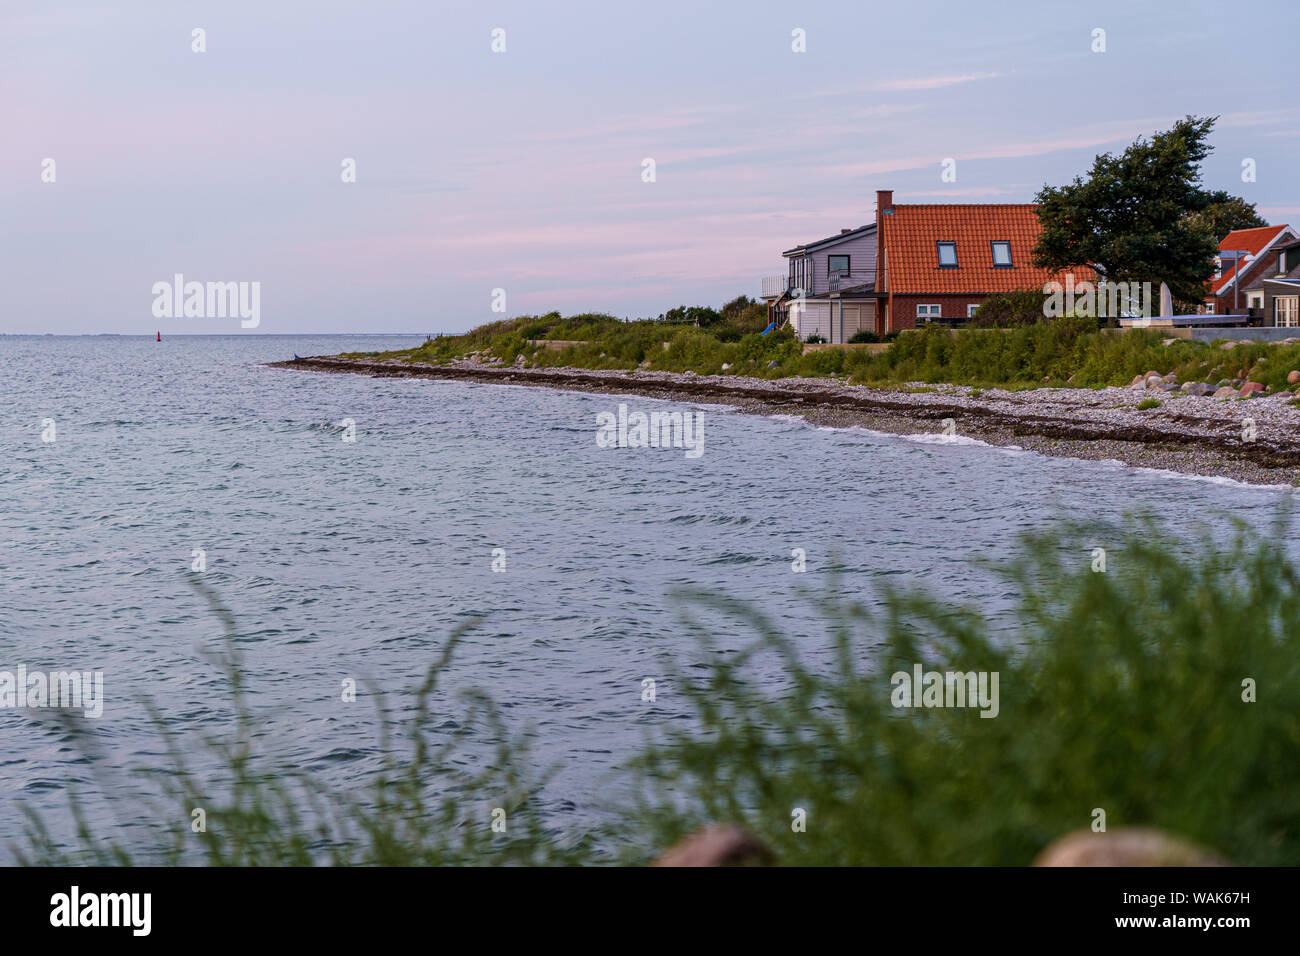 Evening at the beach house on the coast overlooking the Baltic Sea Stock Photo